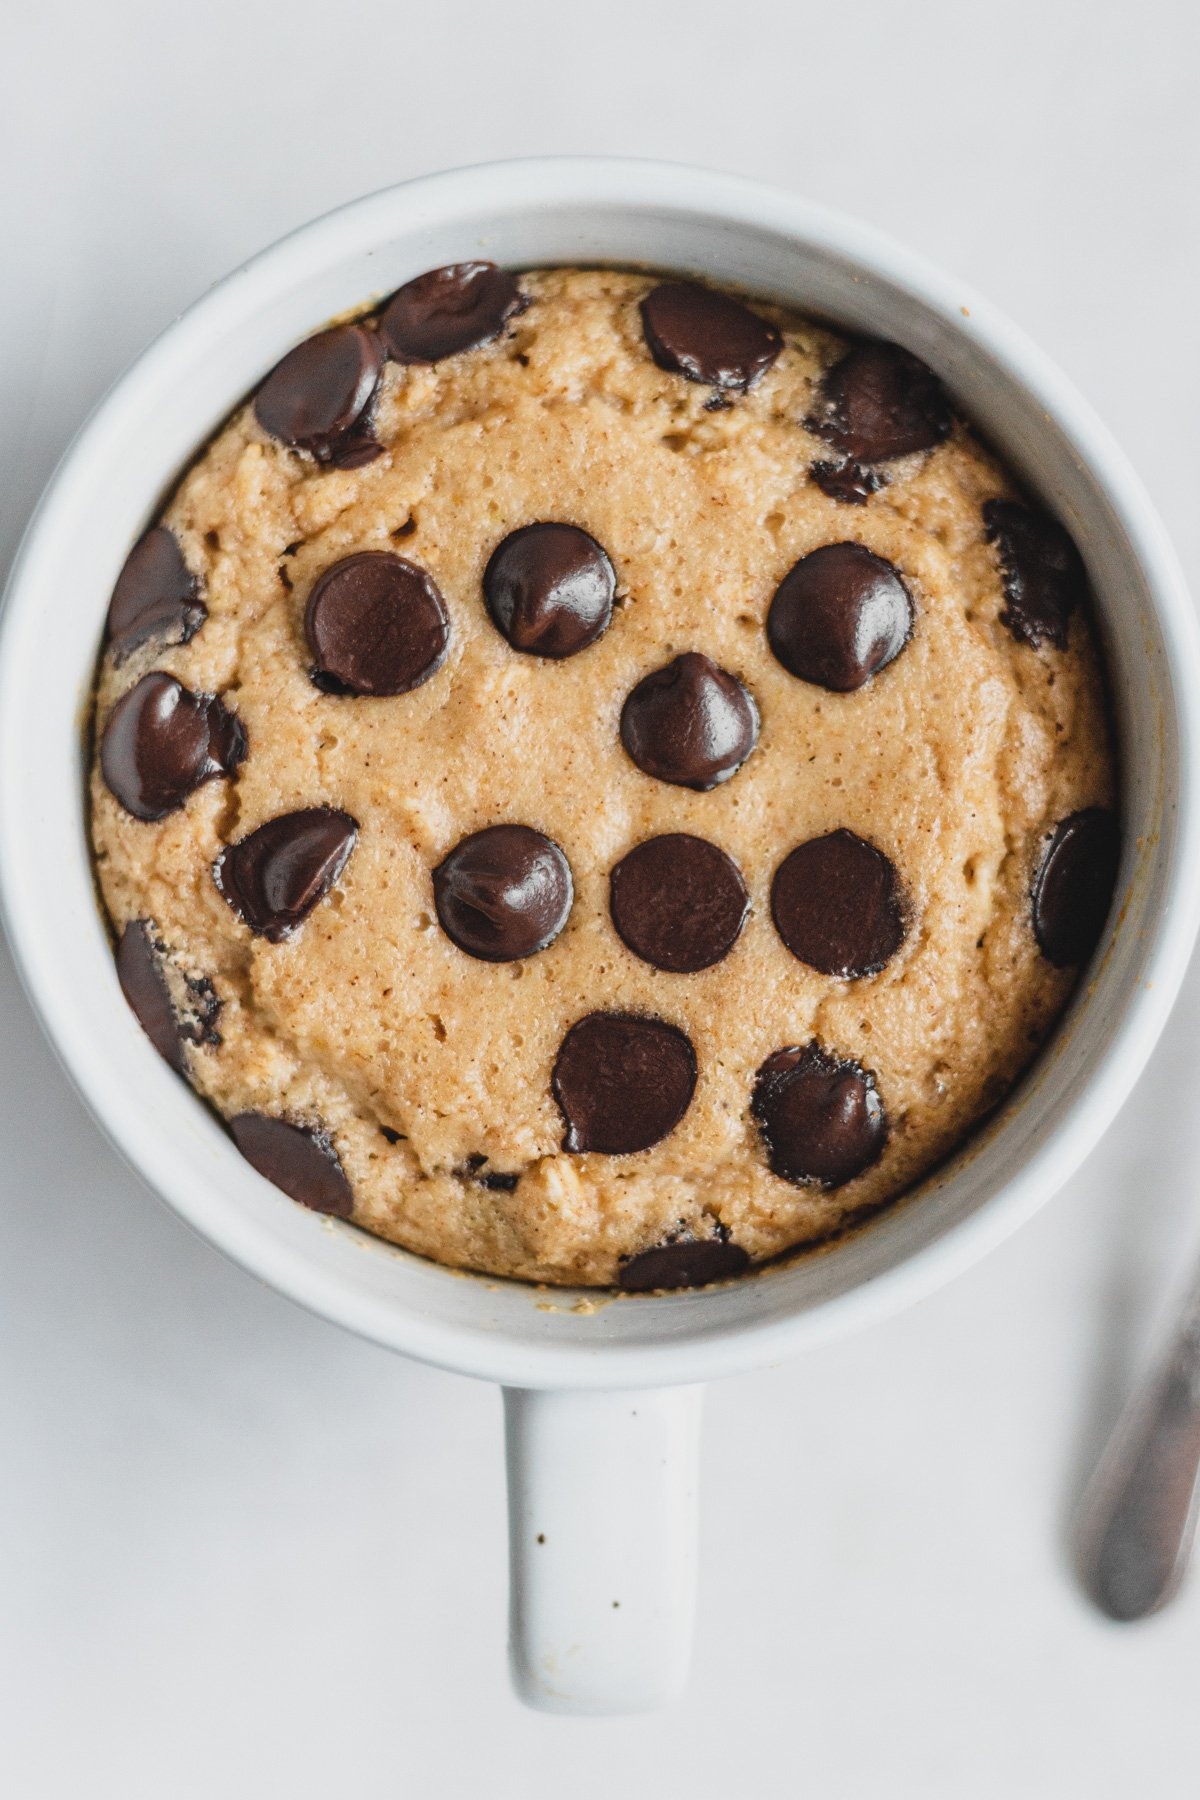 single serve baked oatmeal in a mug, from overhead view. Top is covered in chocolate chips.